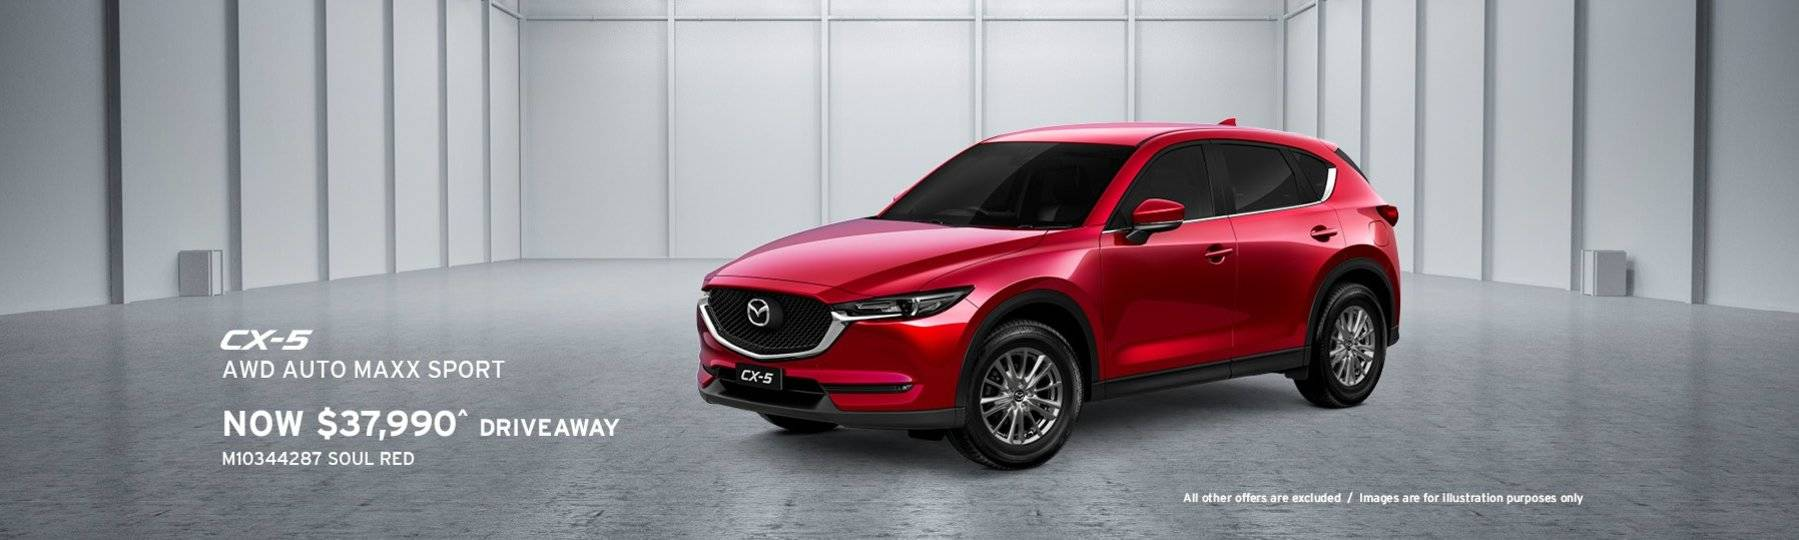 Newcastle Mazda, CX-5